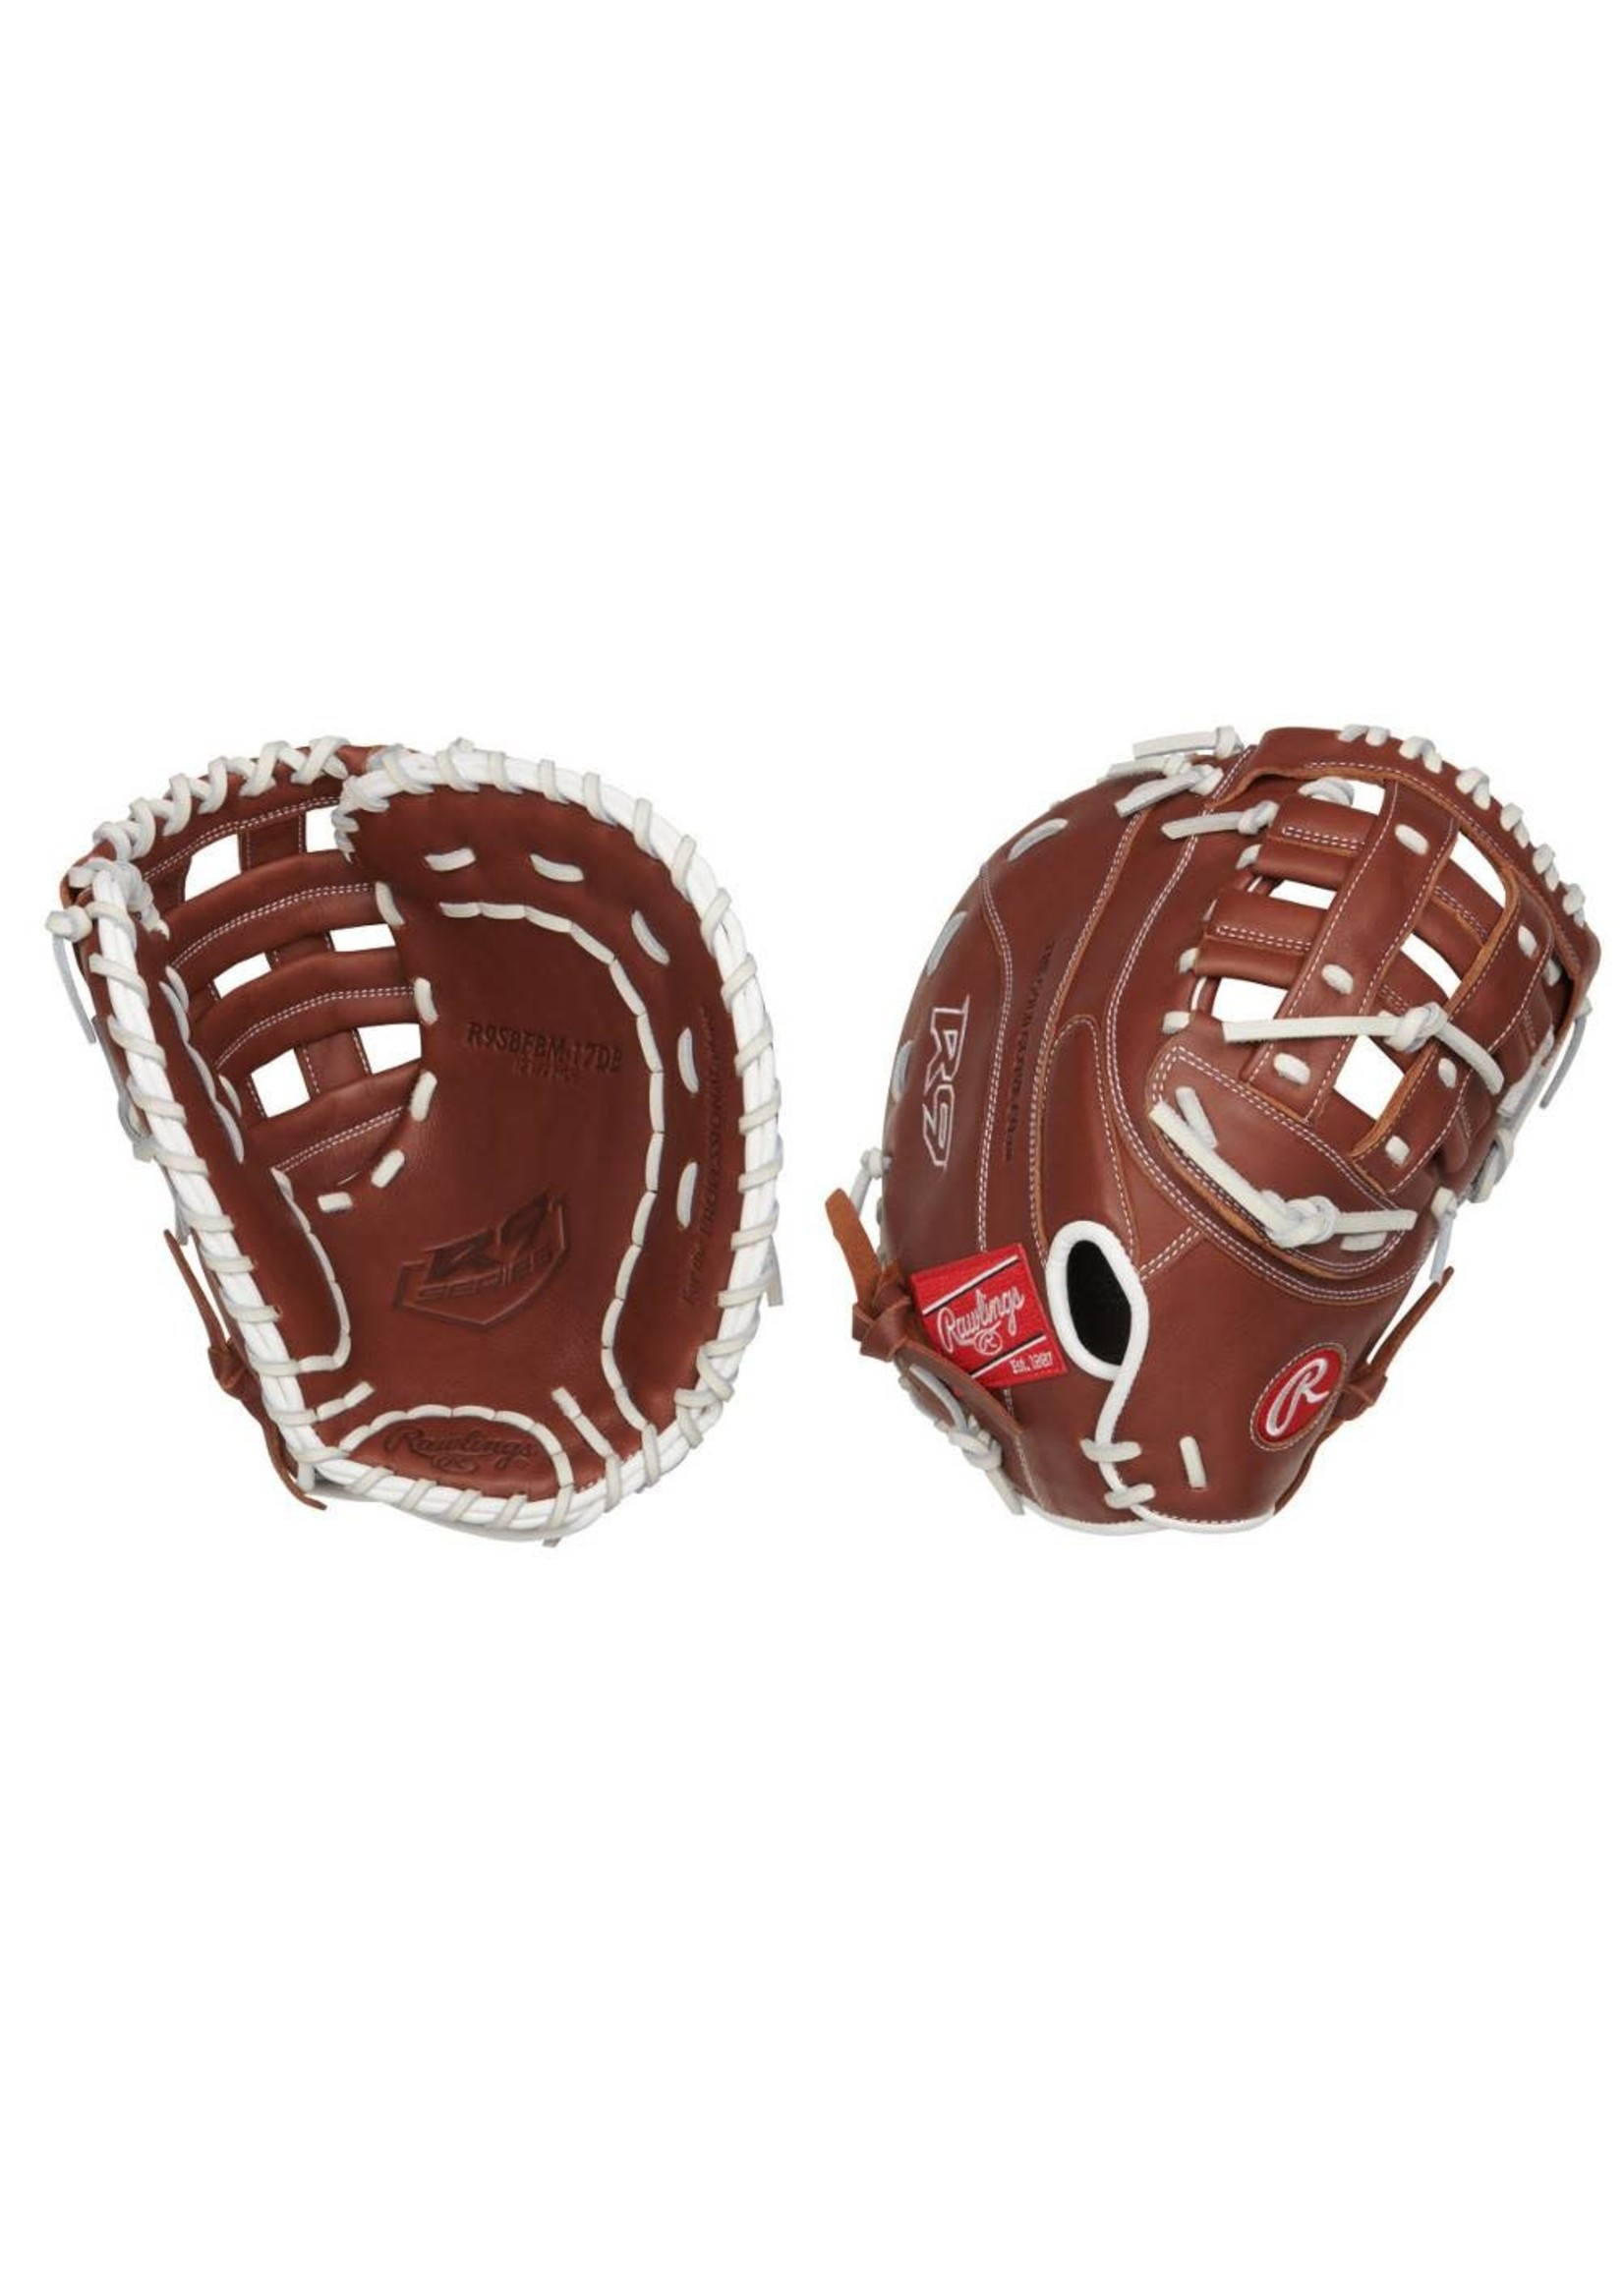 Rawlings RAWLINGS R9 12 1/2 GANT SOFTBALL PREMIER BUT